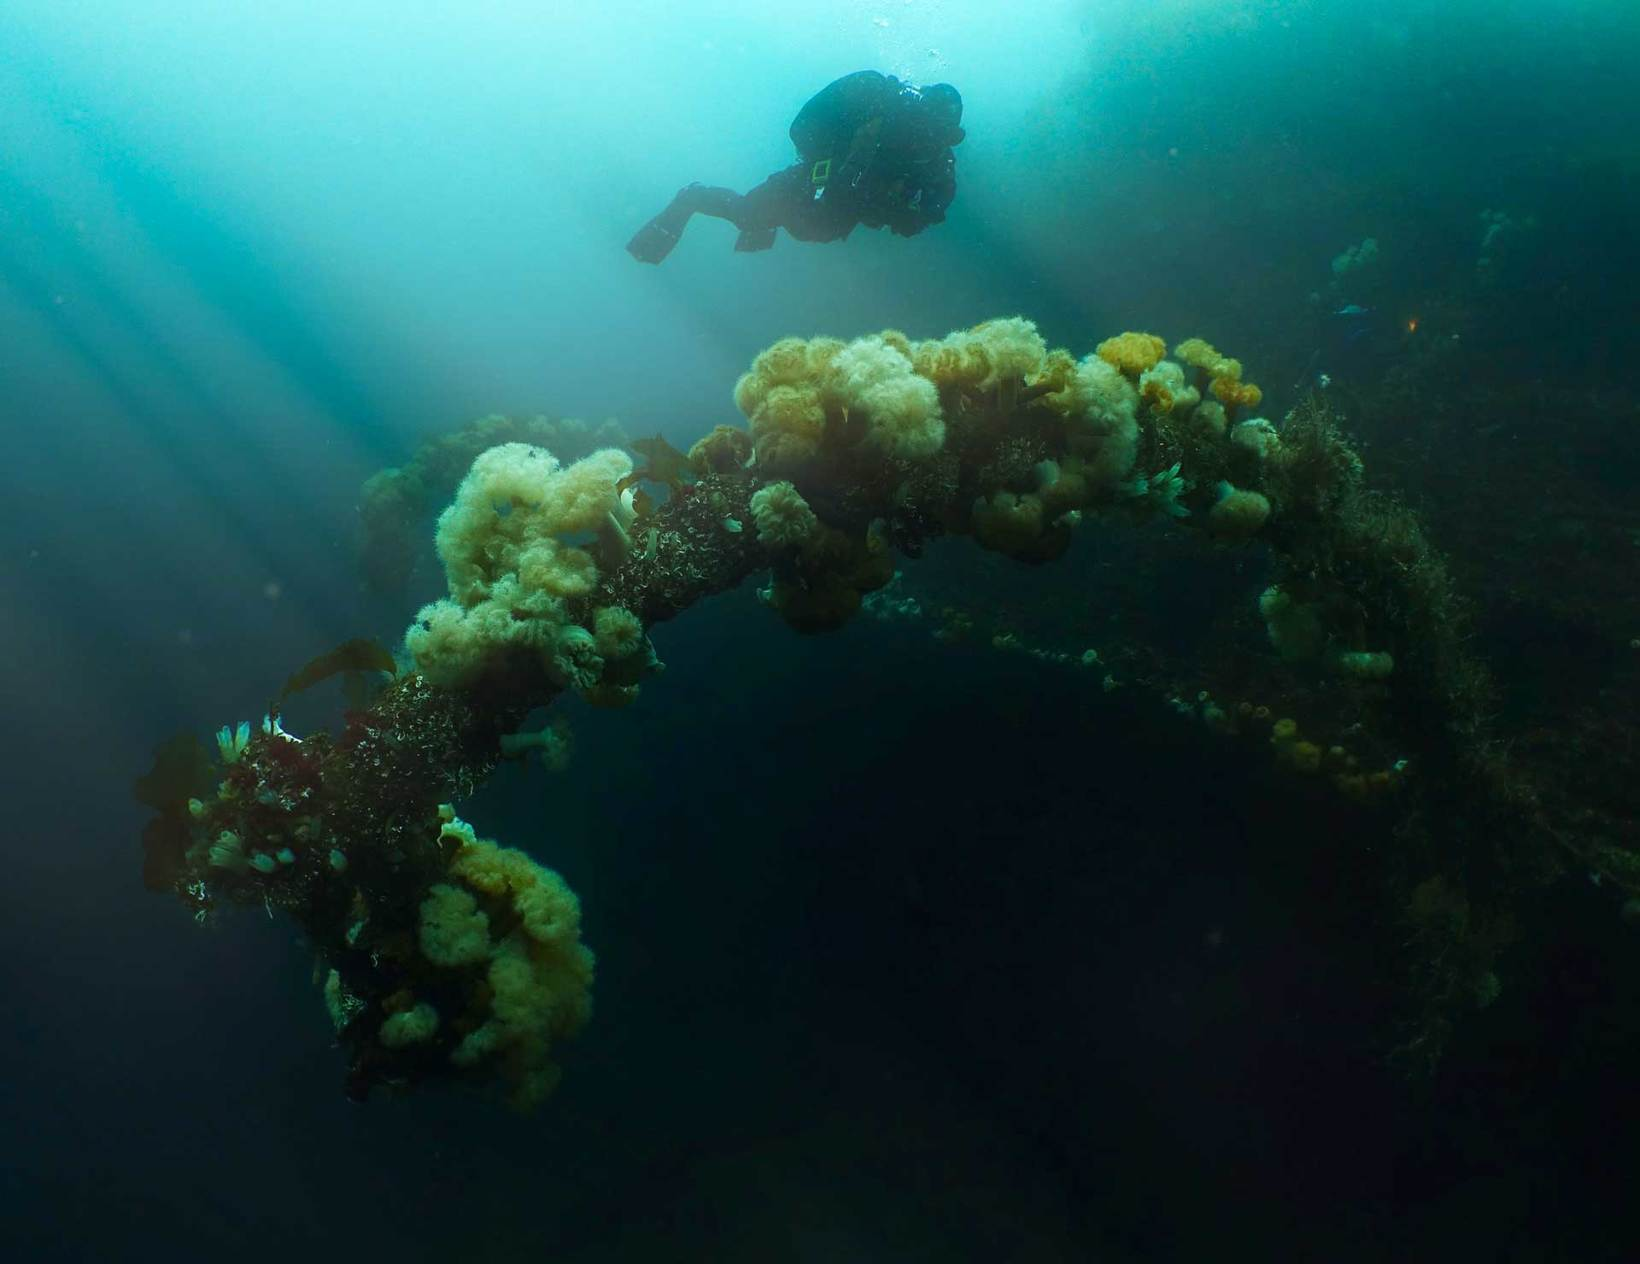 Dive into history in Dyrøy